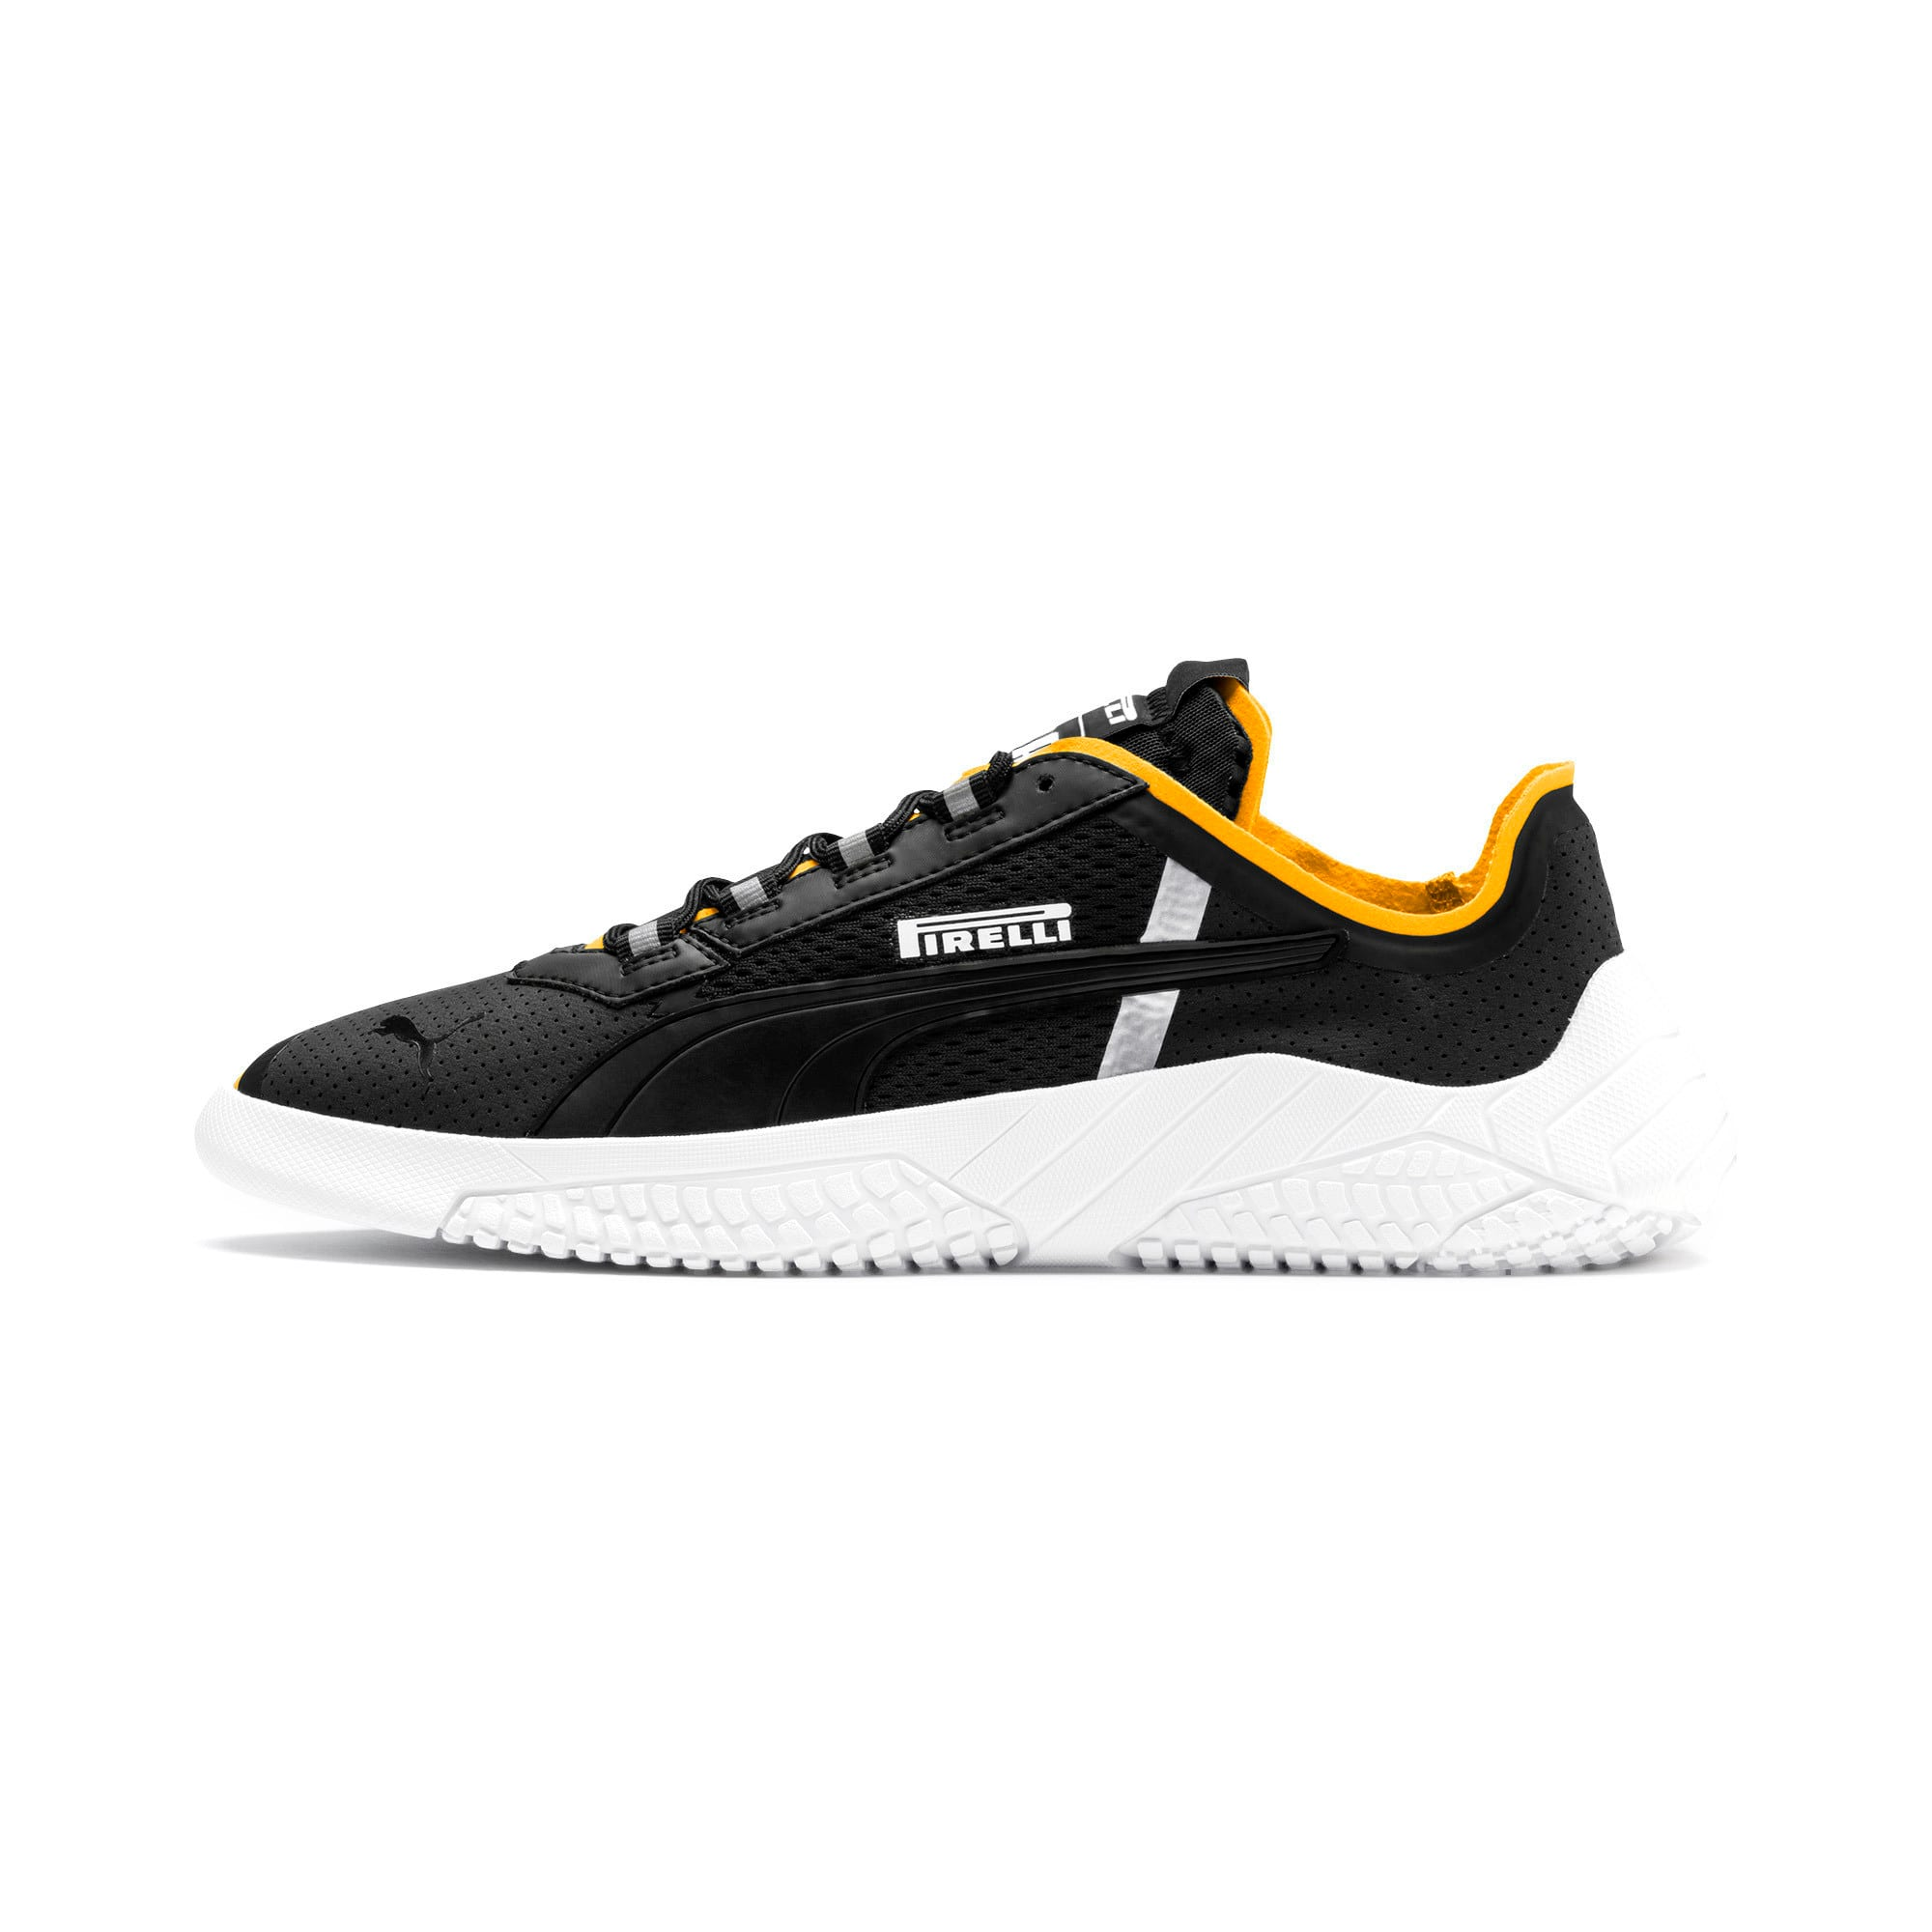 Thumbnail 1 of Scarpe da ginnastica Pirelli Replicat-X, Puma Black-Puma White-Zinnia, medium